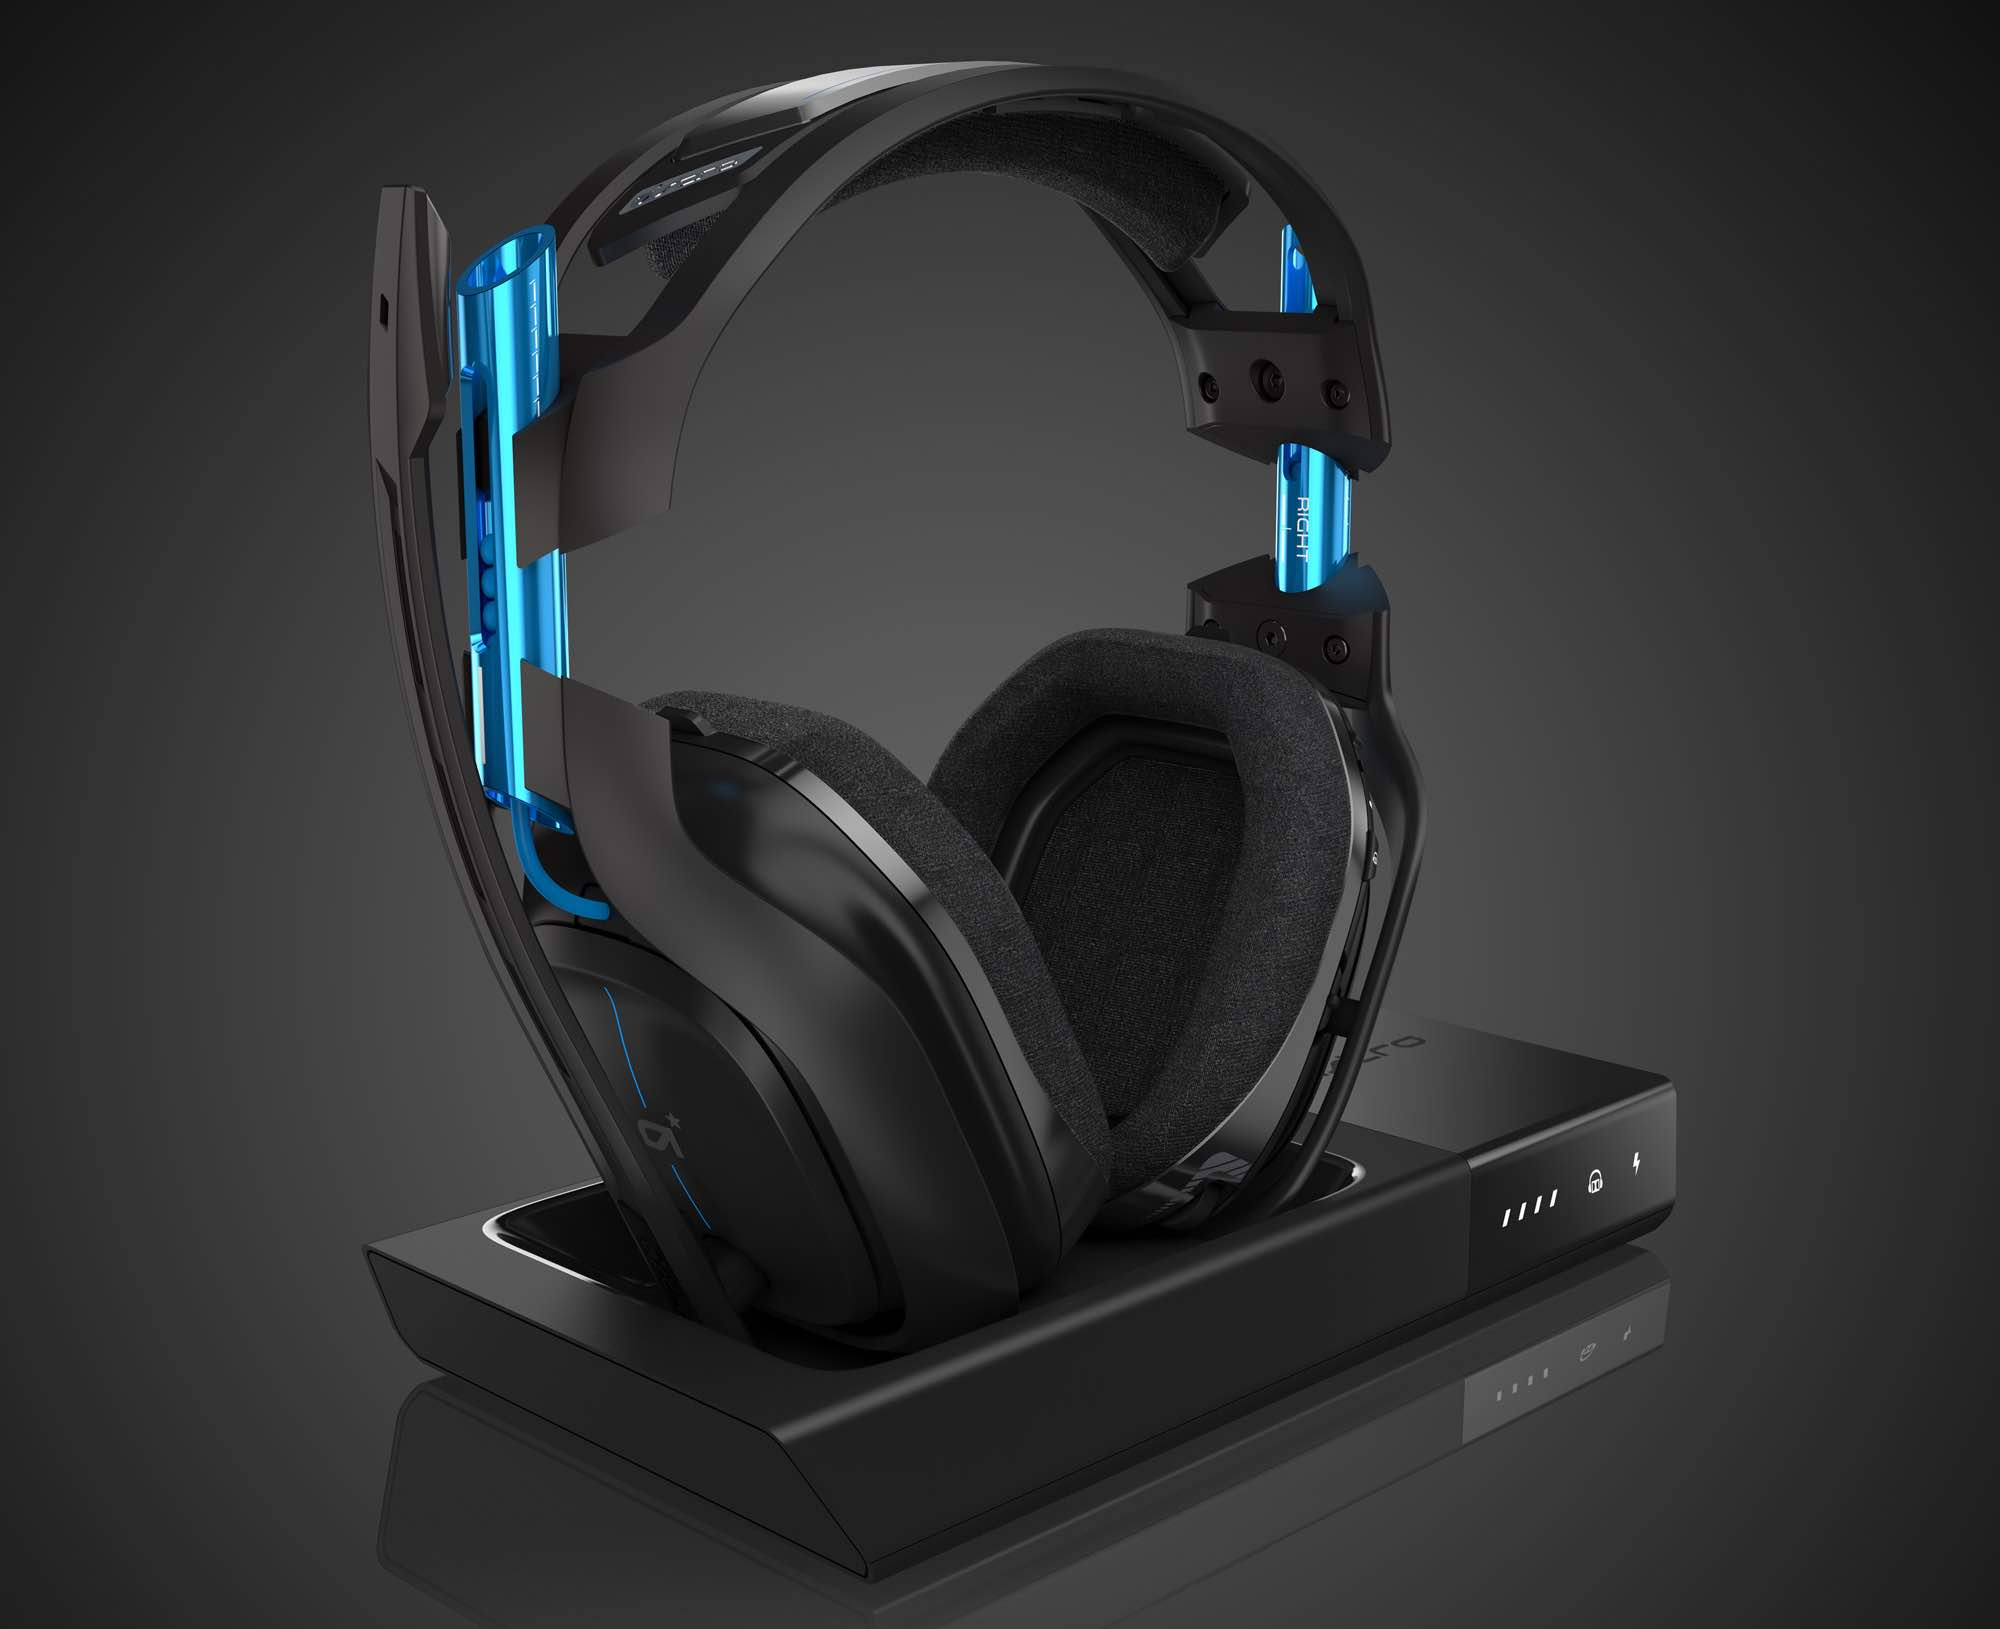 Astro A50 (2016) Review: Ultimate Gaming Headset Just Got